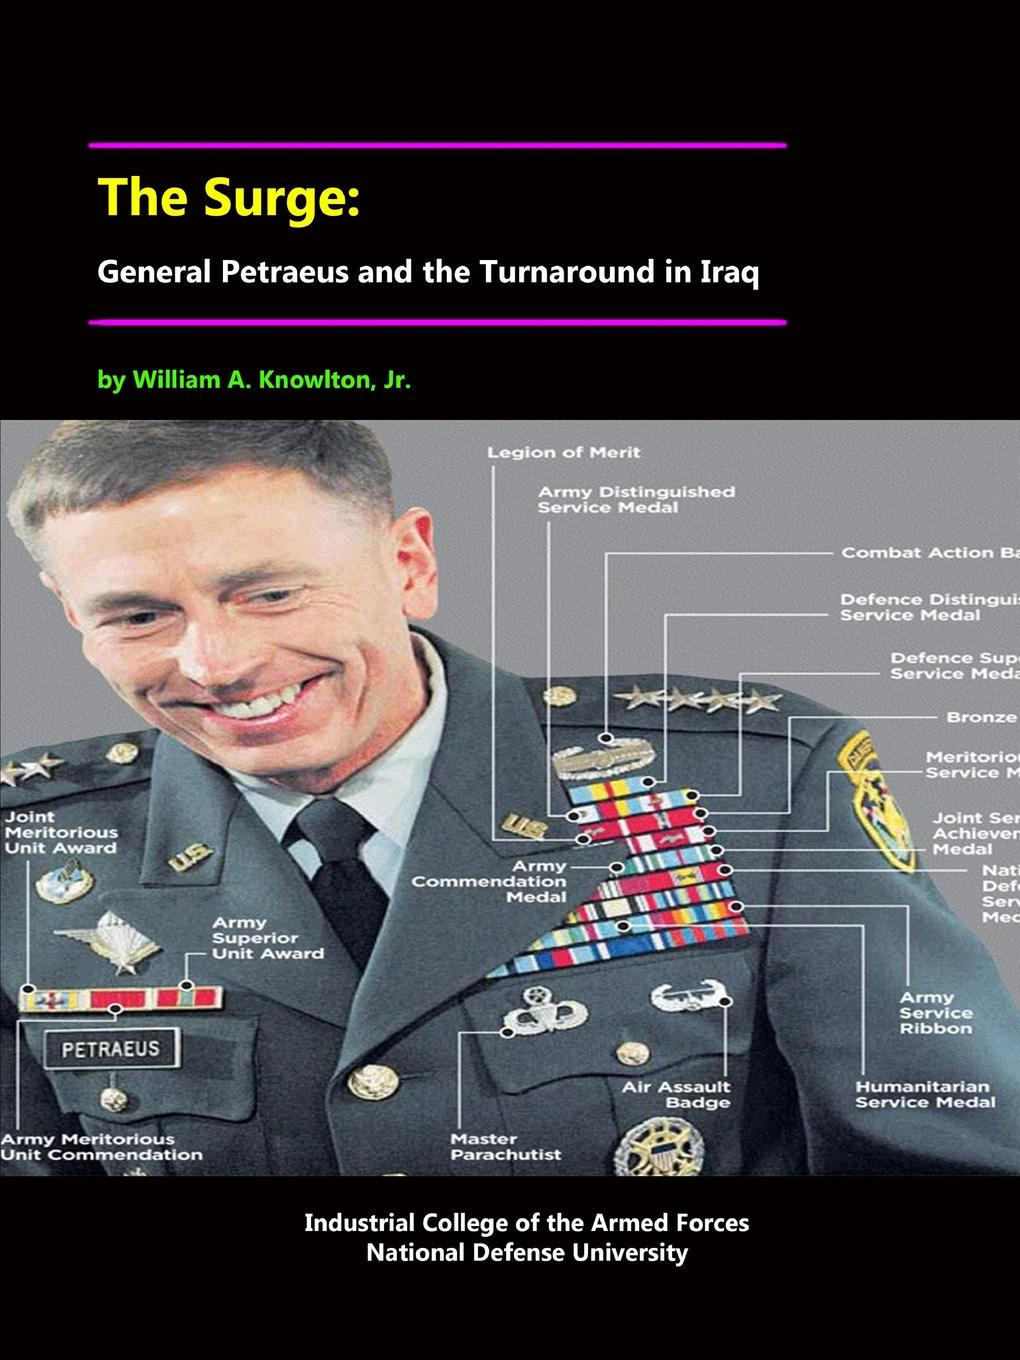 National Defense University, Jr. William A. Knowlton The Surge. General Petraeus and the Turnaround in Iraq